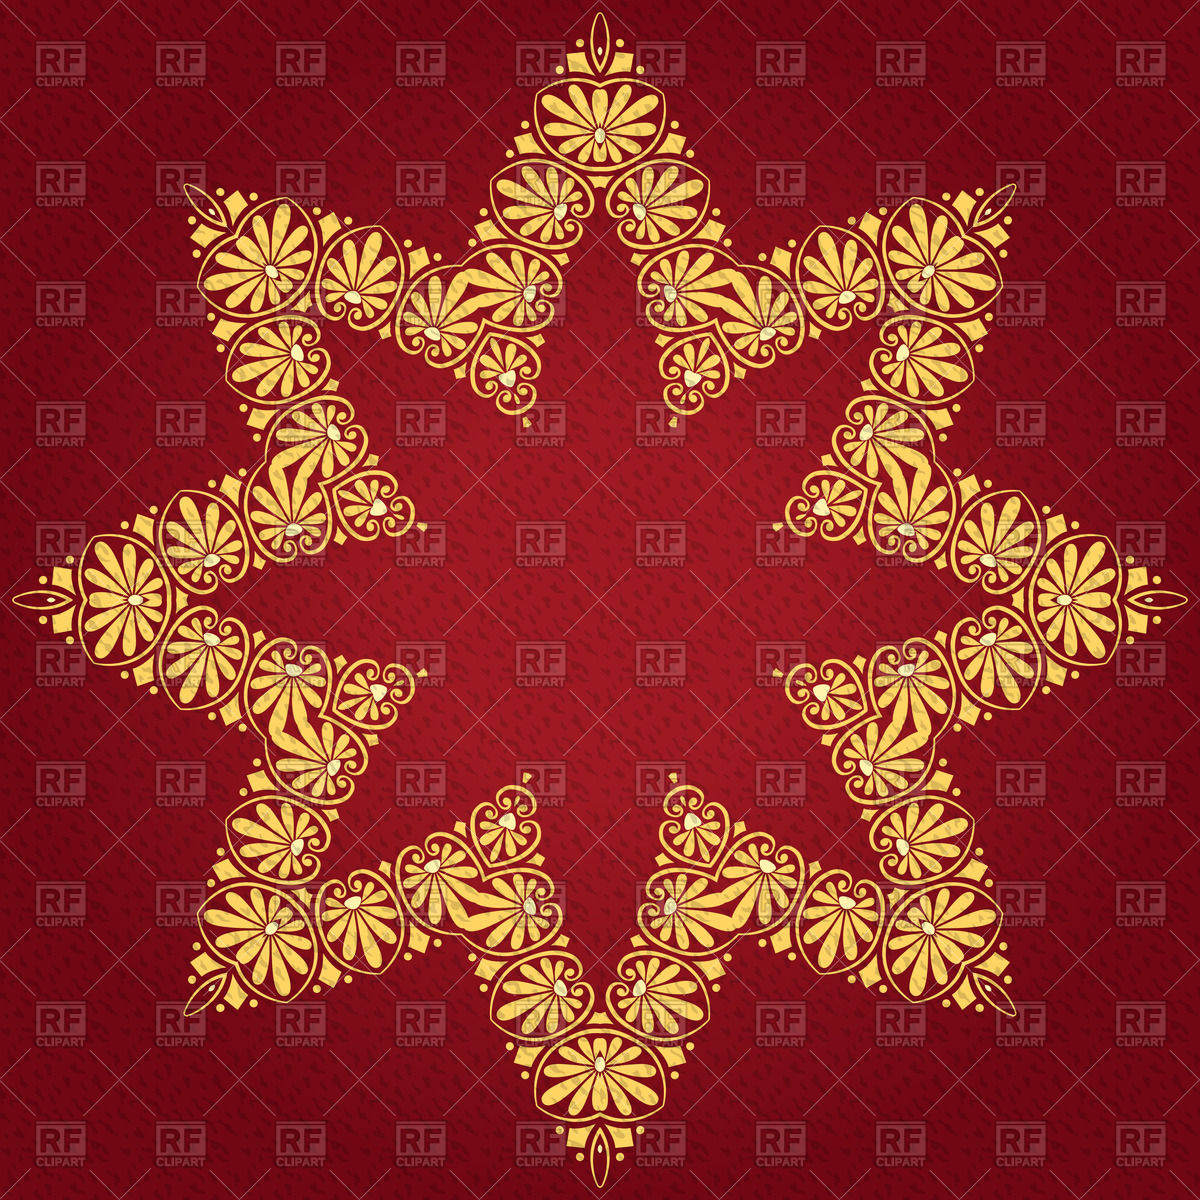 1200x1200 Golden Ornate Christmas Star Vector Image Vector Artwork Of